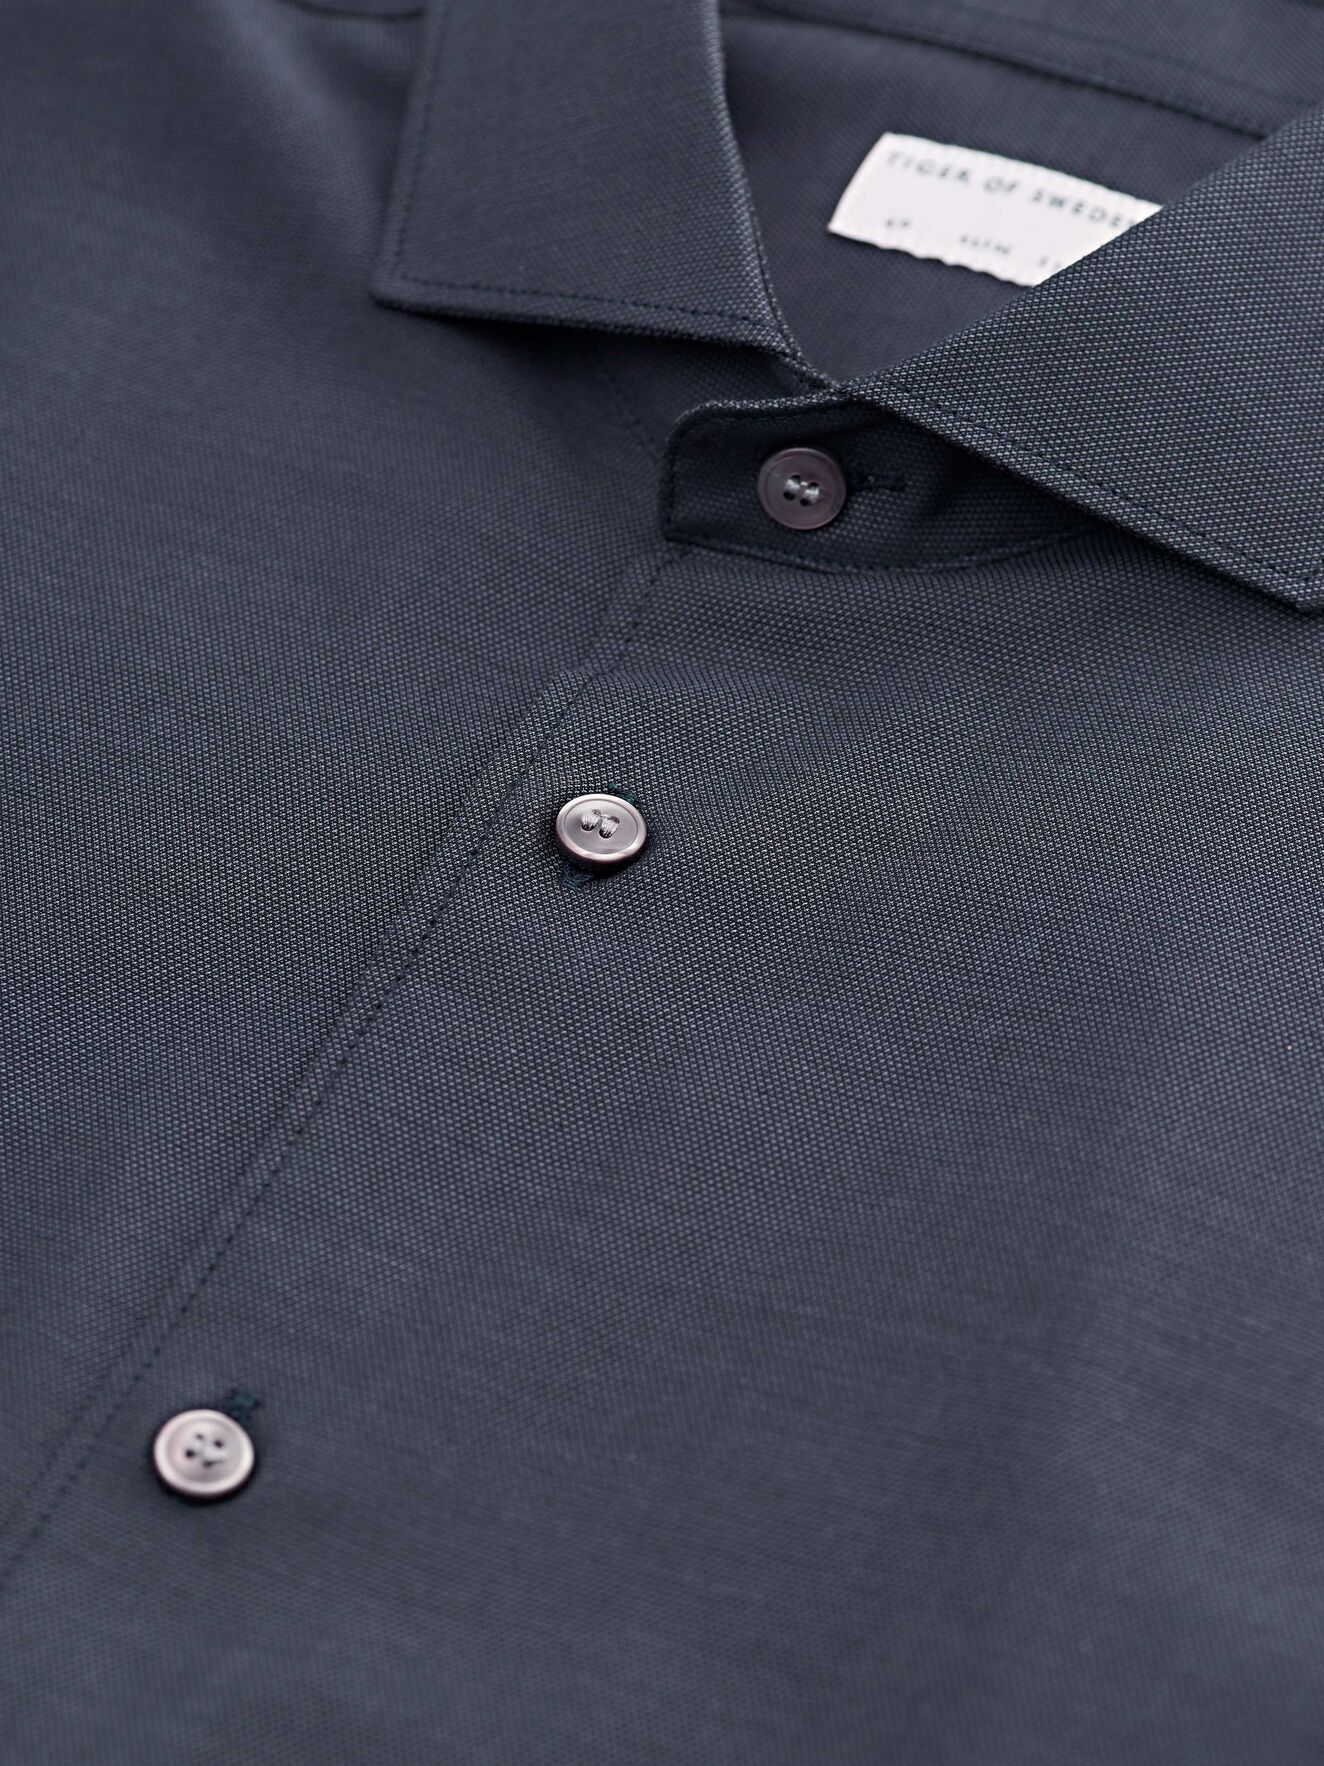 Farrell 5 Shirt in Charcoal from Tiger of Sweden